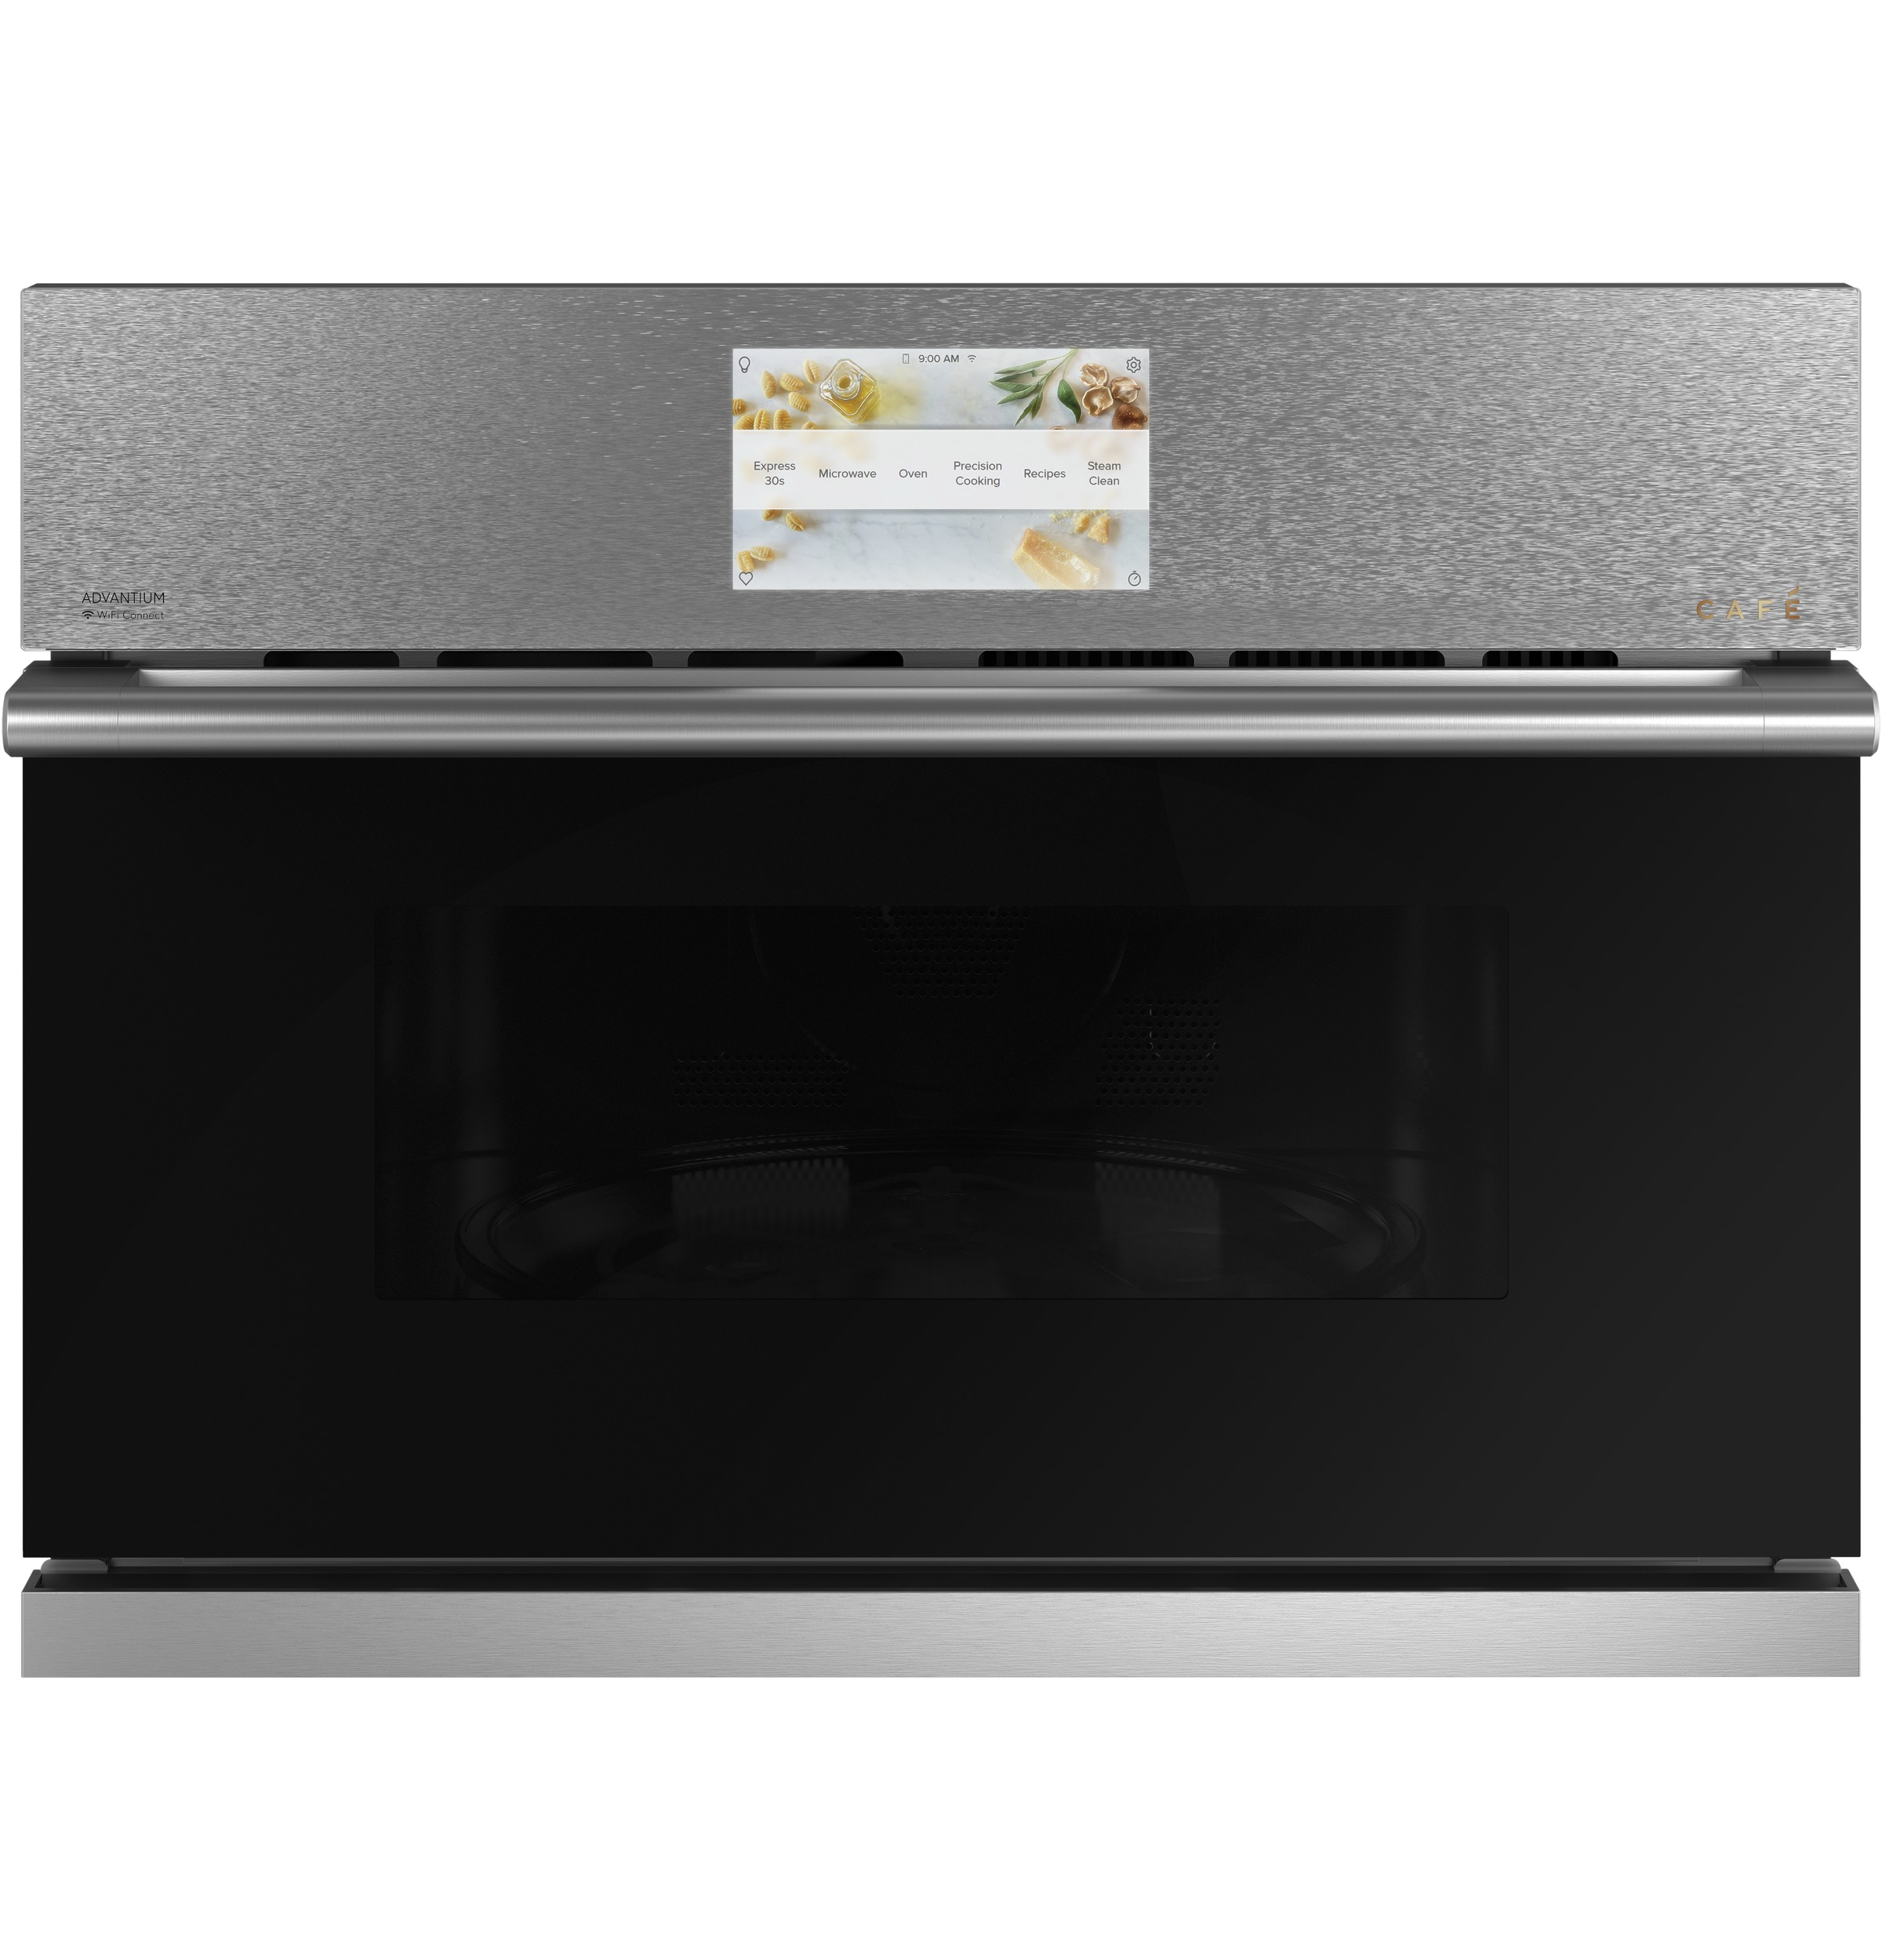 "Cafe Cafe™ 27"" Smart Five in One Oven with 120V Advantium® Technology"